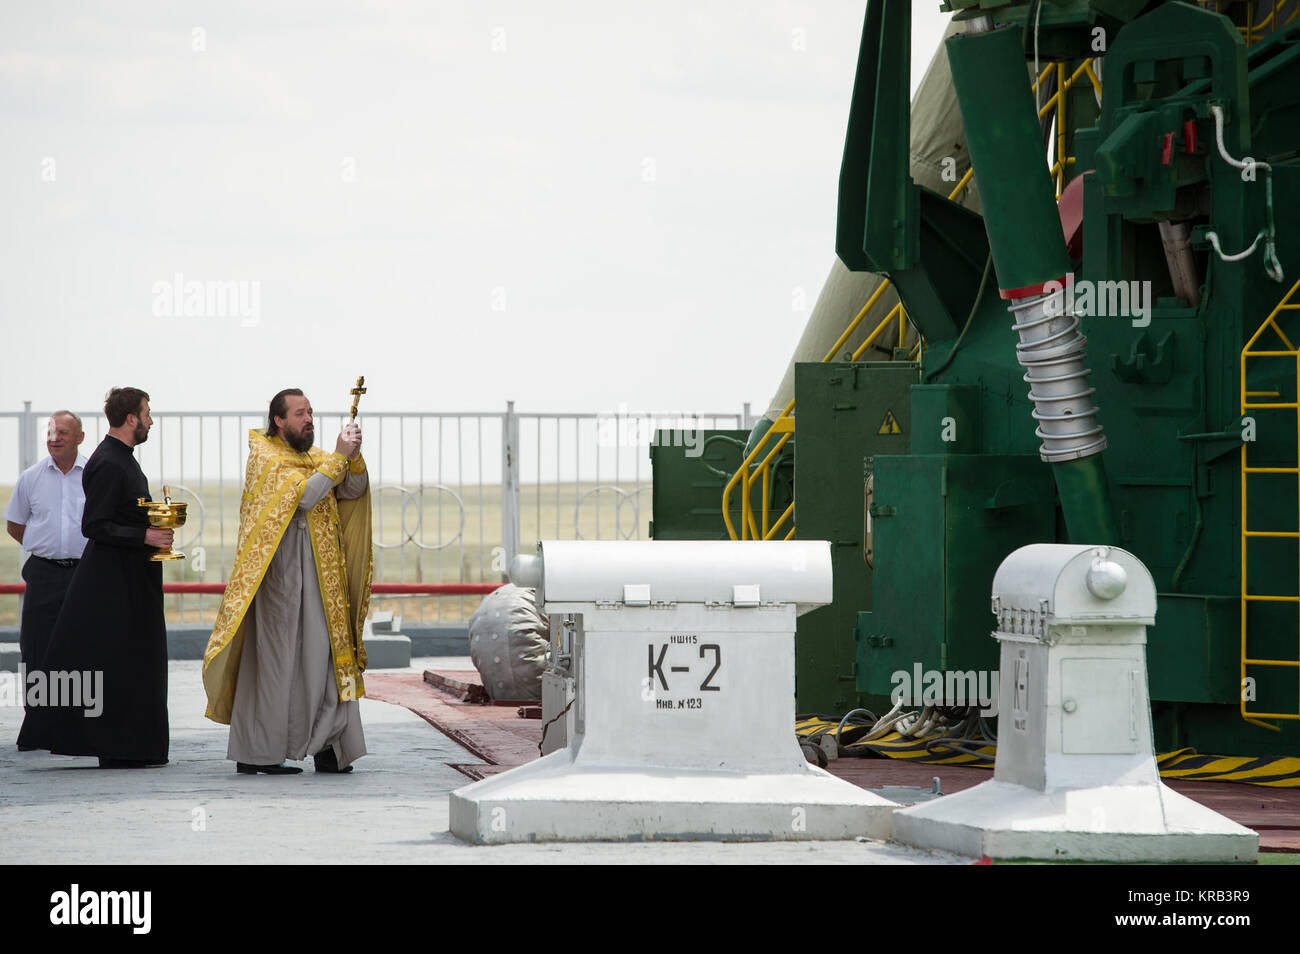 An Orthodox priest blesses the Soyuz rocket at the Baikonur Cosmodrome Launch pad on Monday, May 14, 2012 in Kazakhstan. - Stock Image